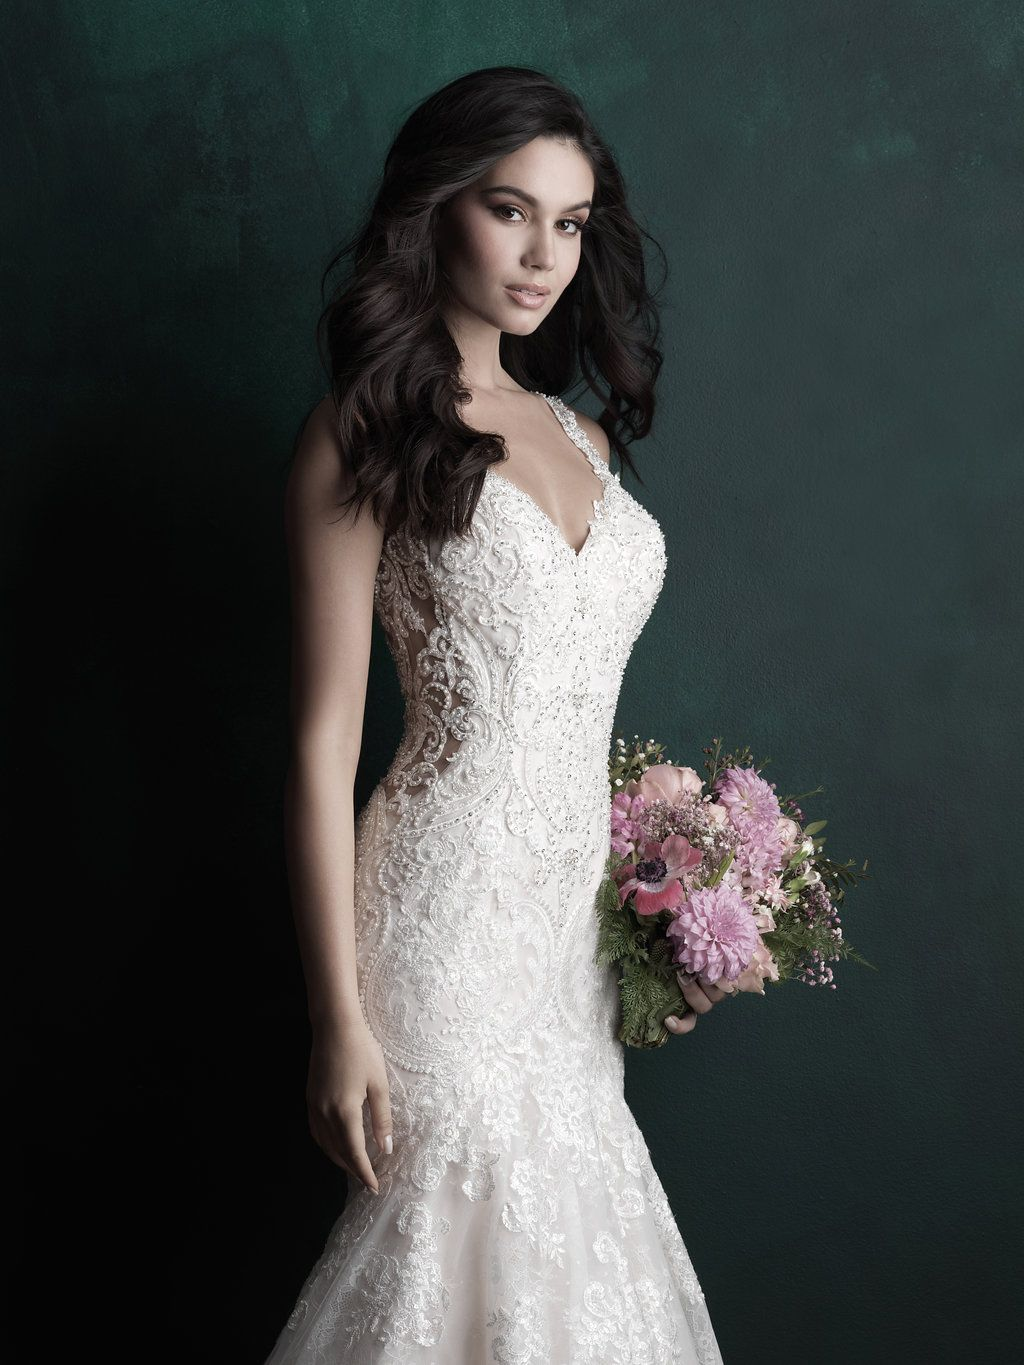 Designer lace wedding dresses  Pin by Andrea Parsons on wedding dresses in   Pinterest  Lace